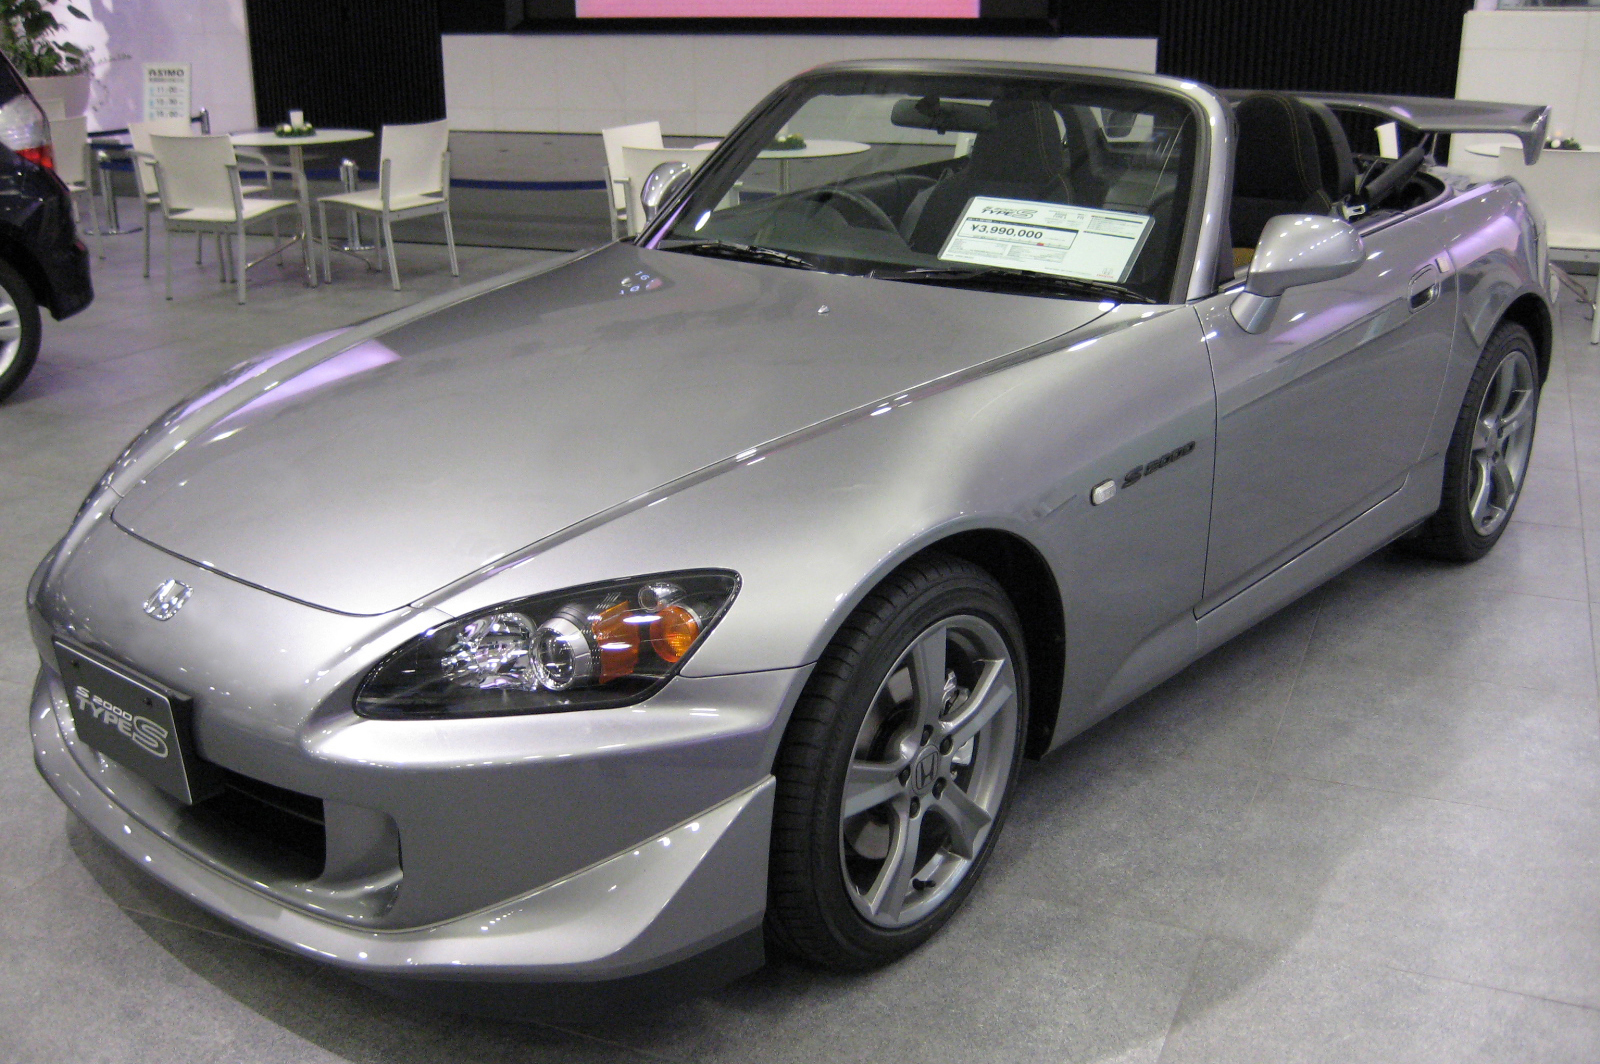 http://upload.wikimedia.org/wikipedia/commons/6/6a/2007_Honda_S2000_TypeS.jpg